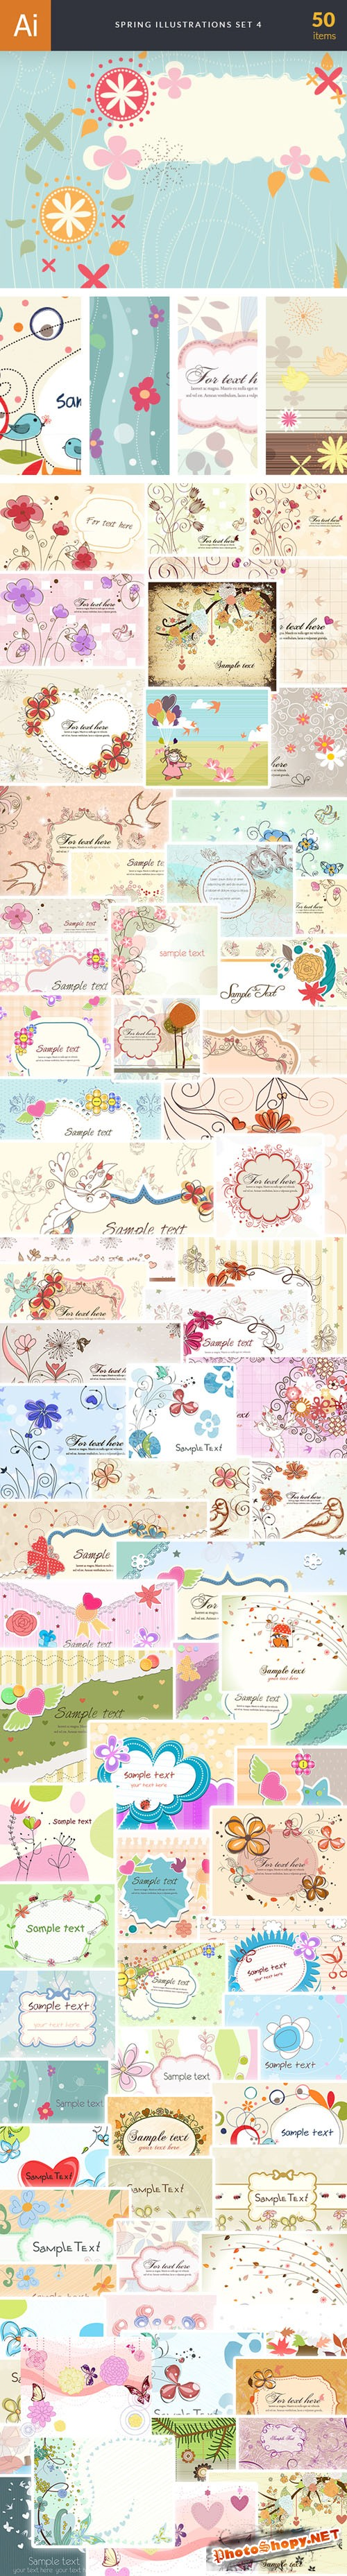 50 Spring Vector Illustrations Bundle